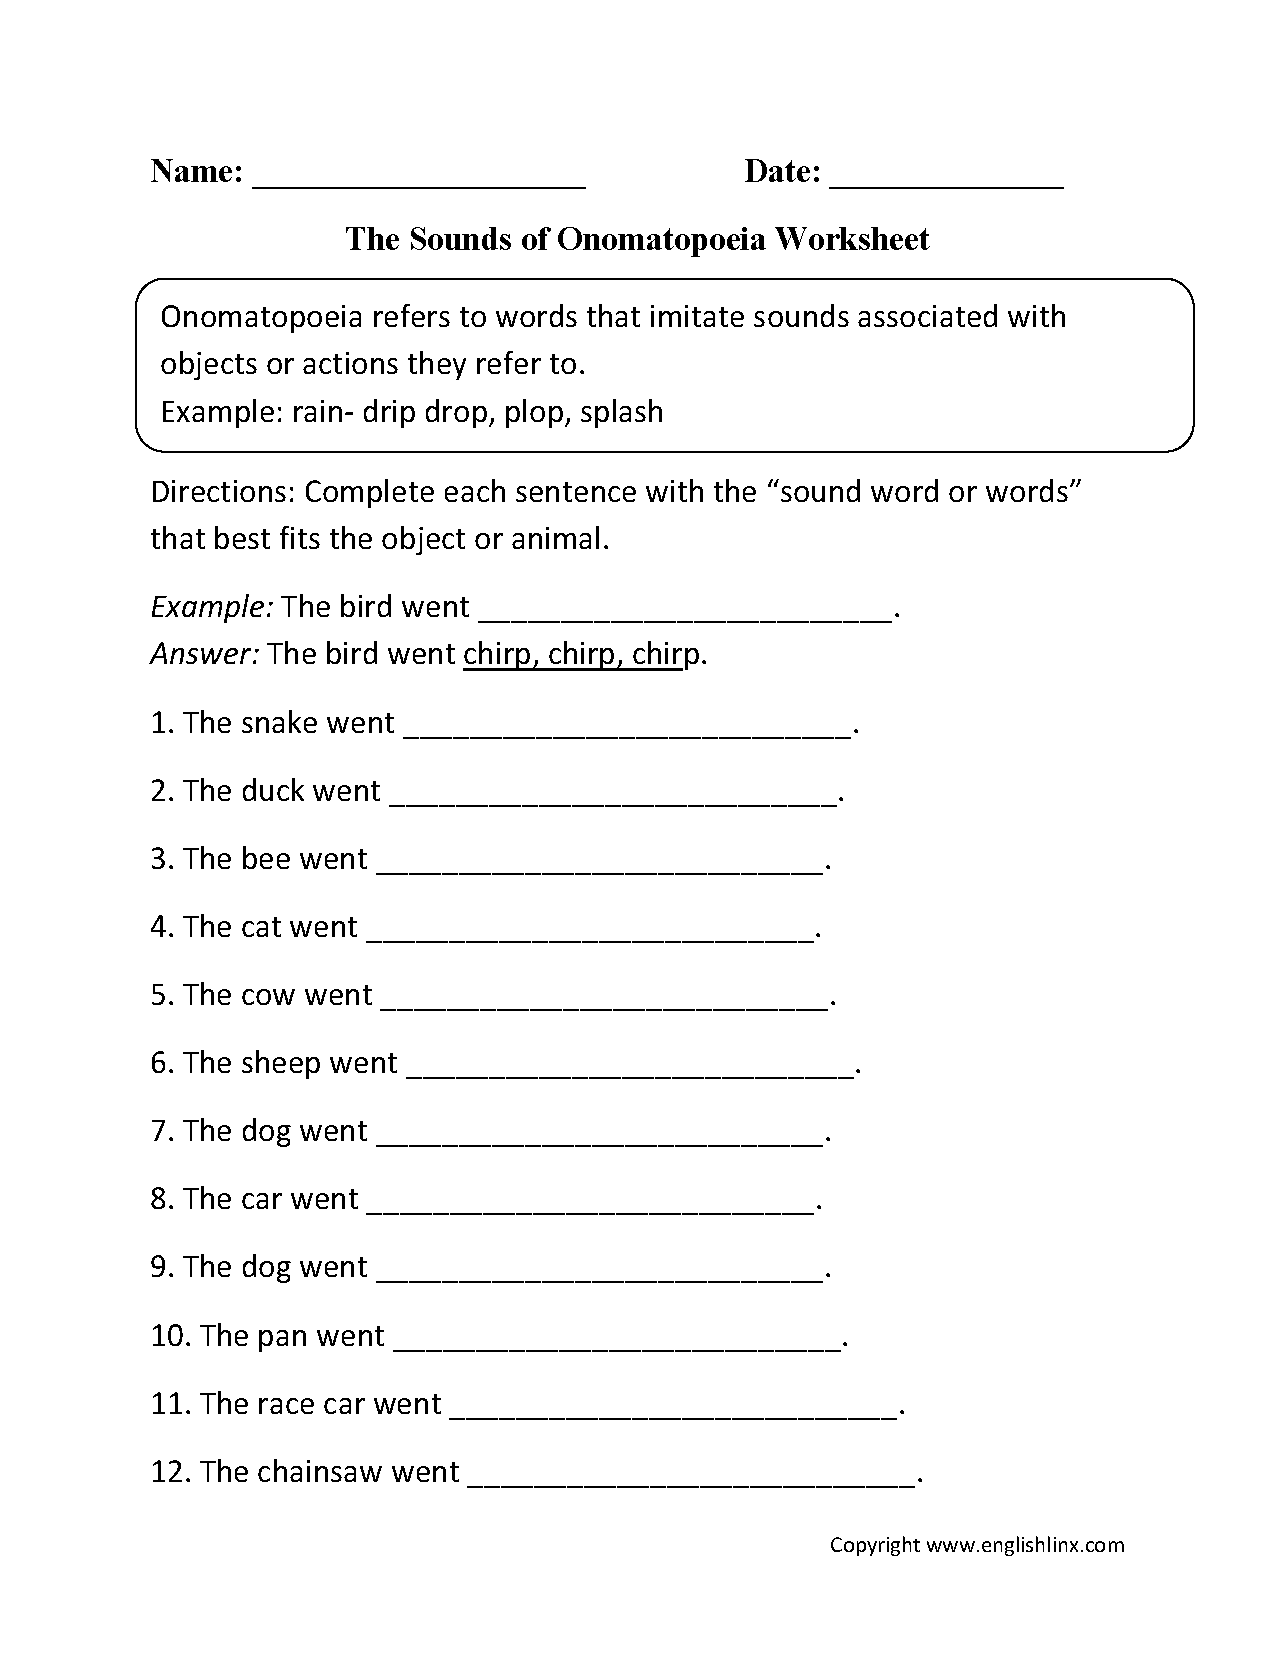 sounds of onomatopoeia worksheet board pinterest worksheets language and. Black Bedroom Furniture Sets. Home Design Ideas